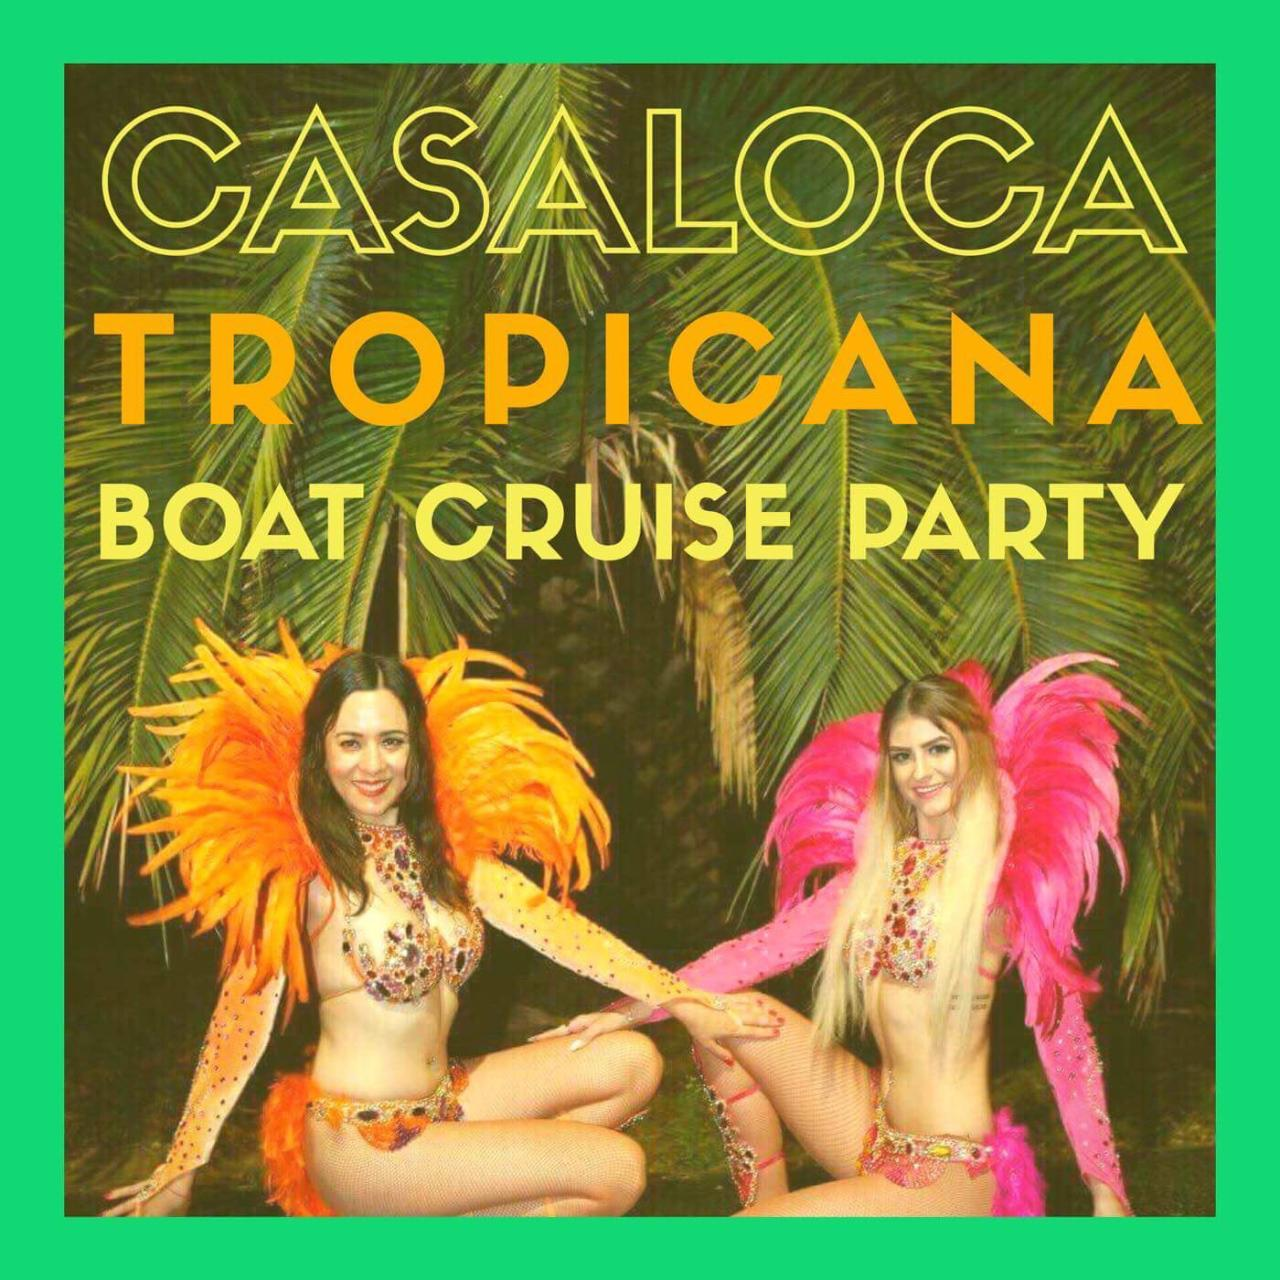 Casaloca Tropicana Boat Cruise Party